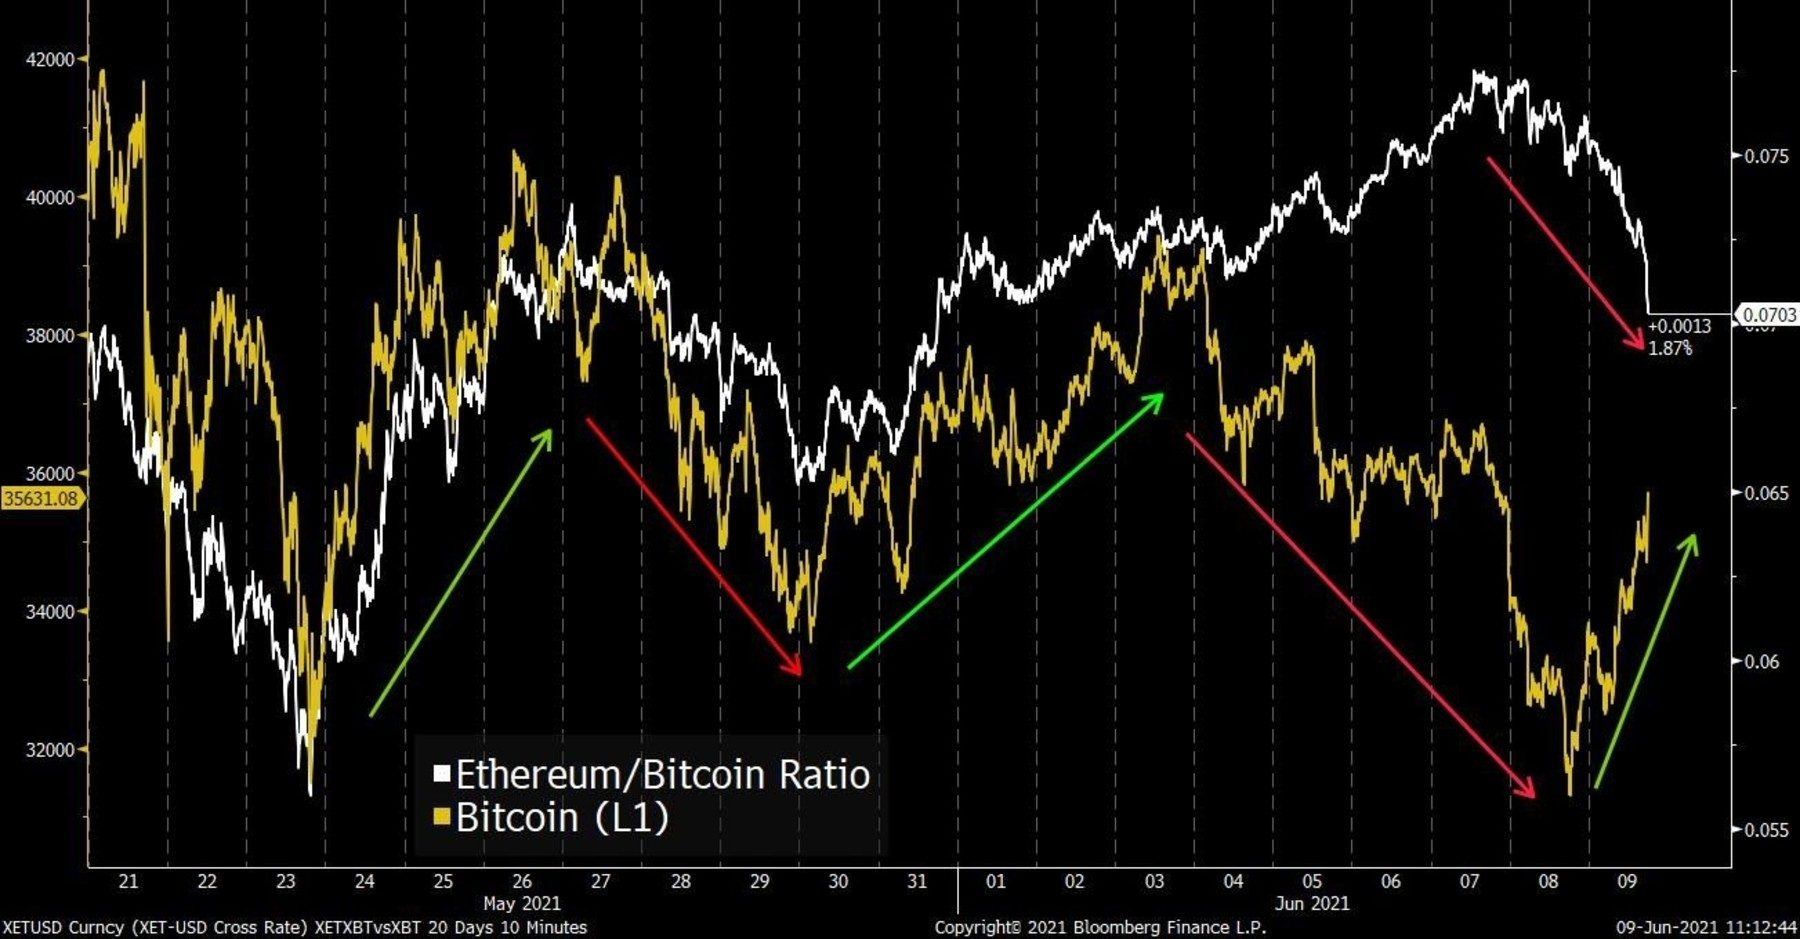 Bitcoin/Ethereum Ratio Chart since mid-May